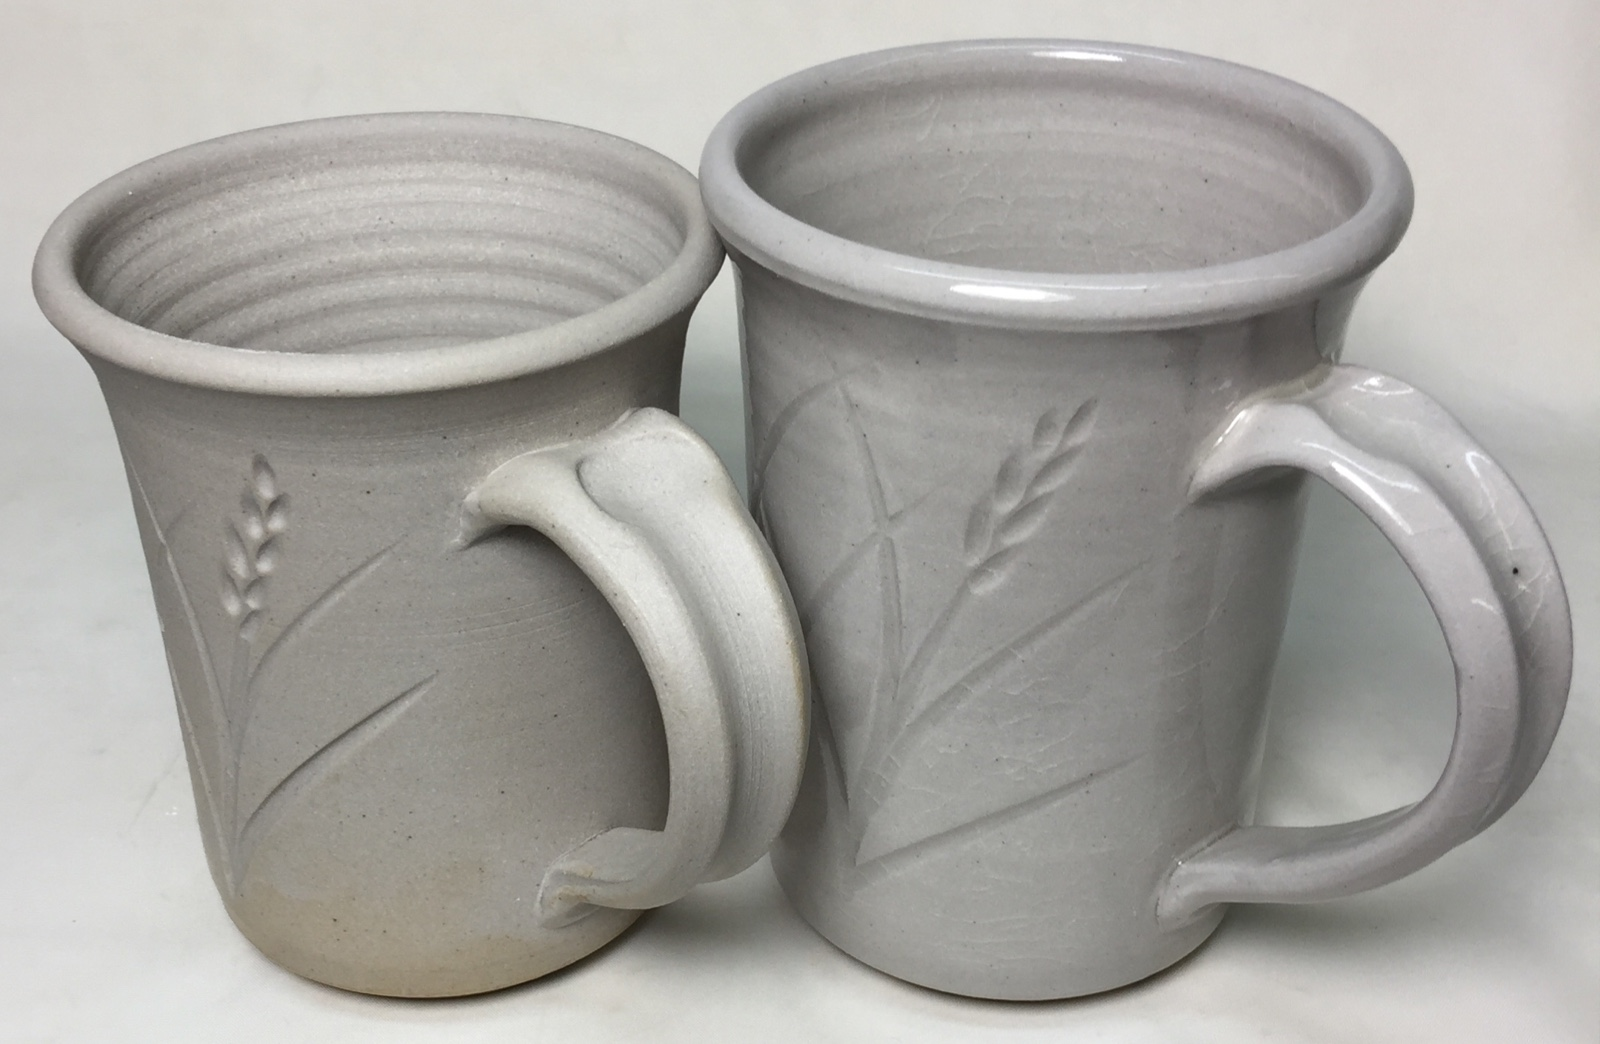 Can you cone-03-clear-glaze a cone 10R bisque-fired stoneware mug? Yes.